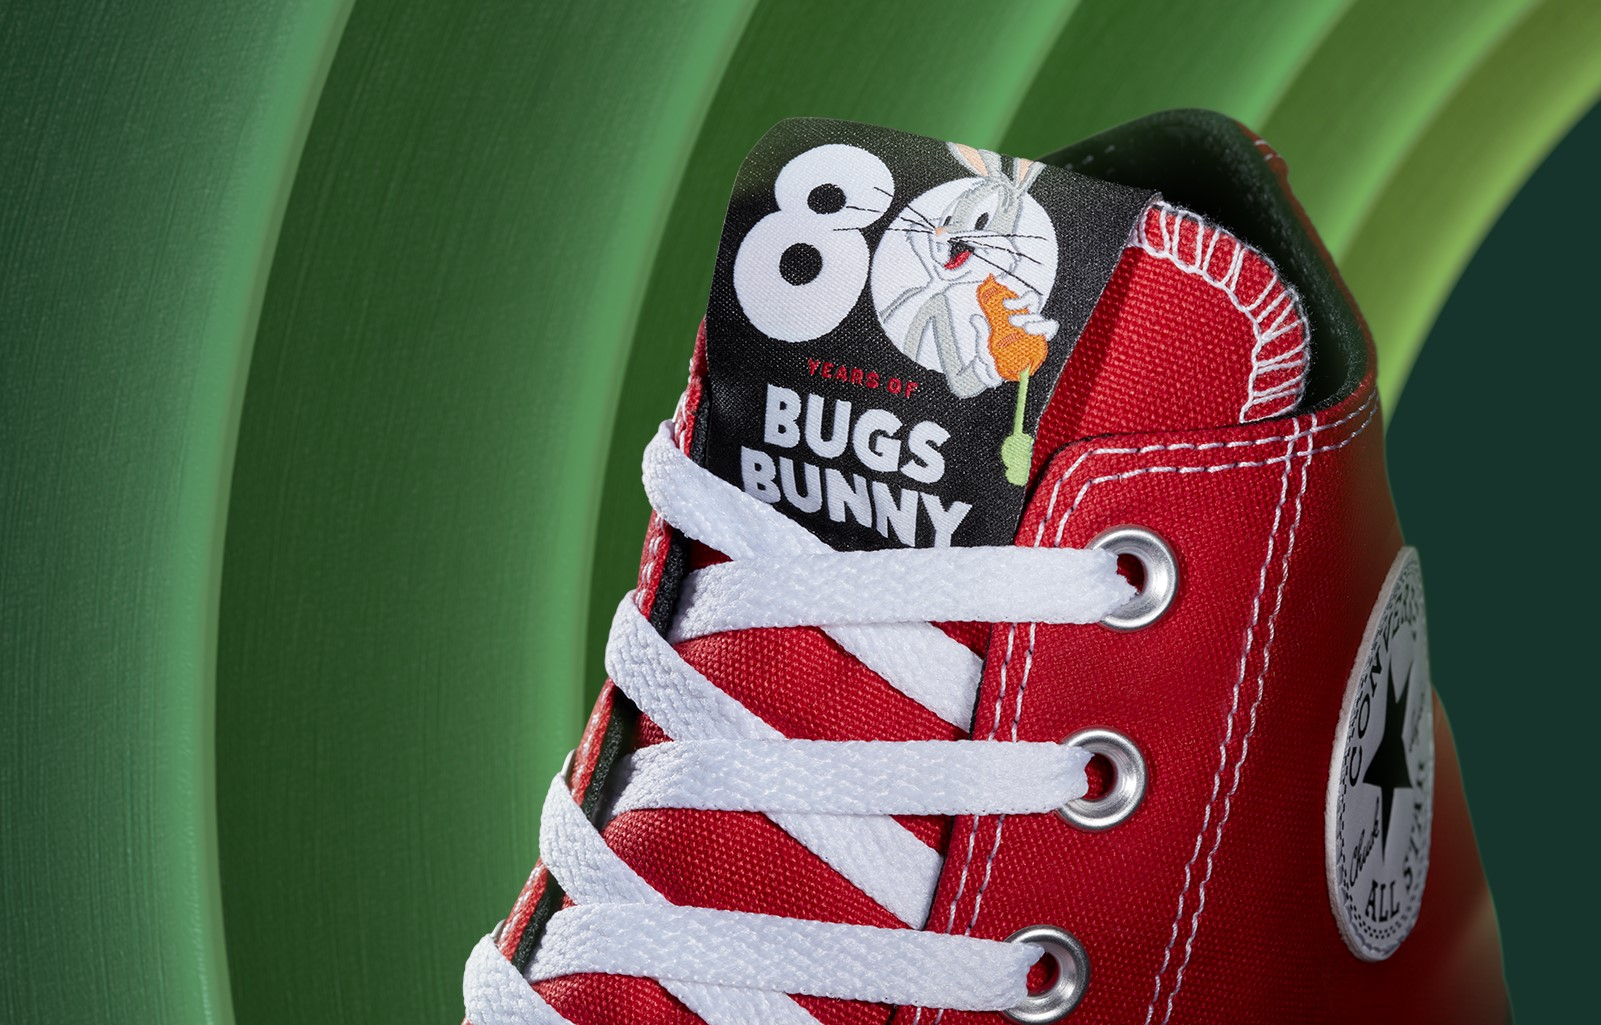 Converse celebrates Bugs Bunny's 80th anniversary with a shoe collection 15